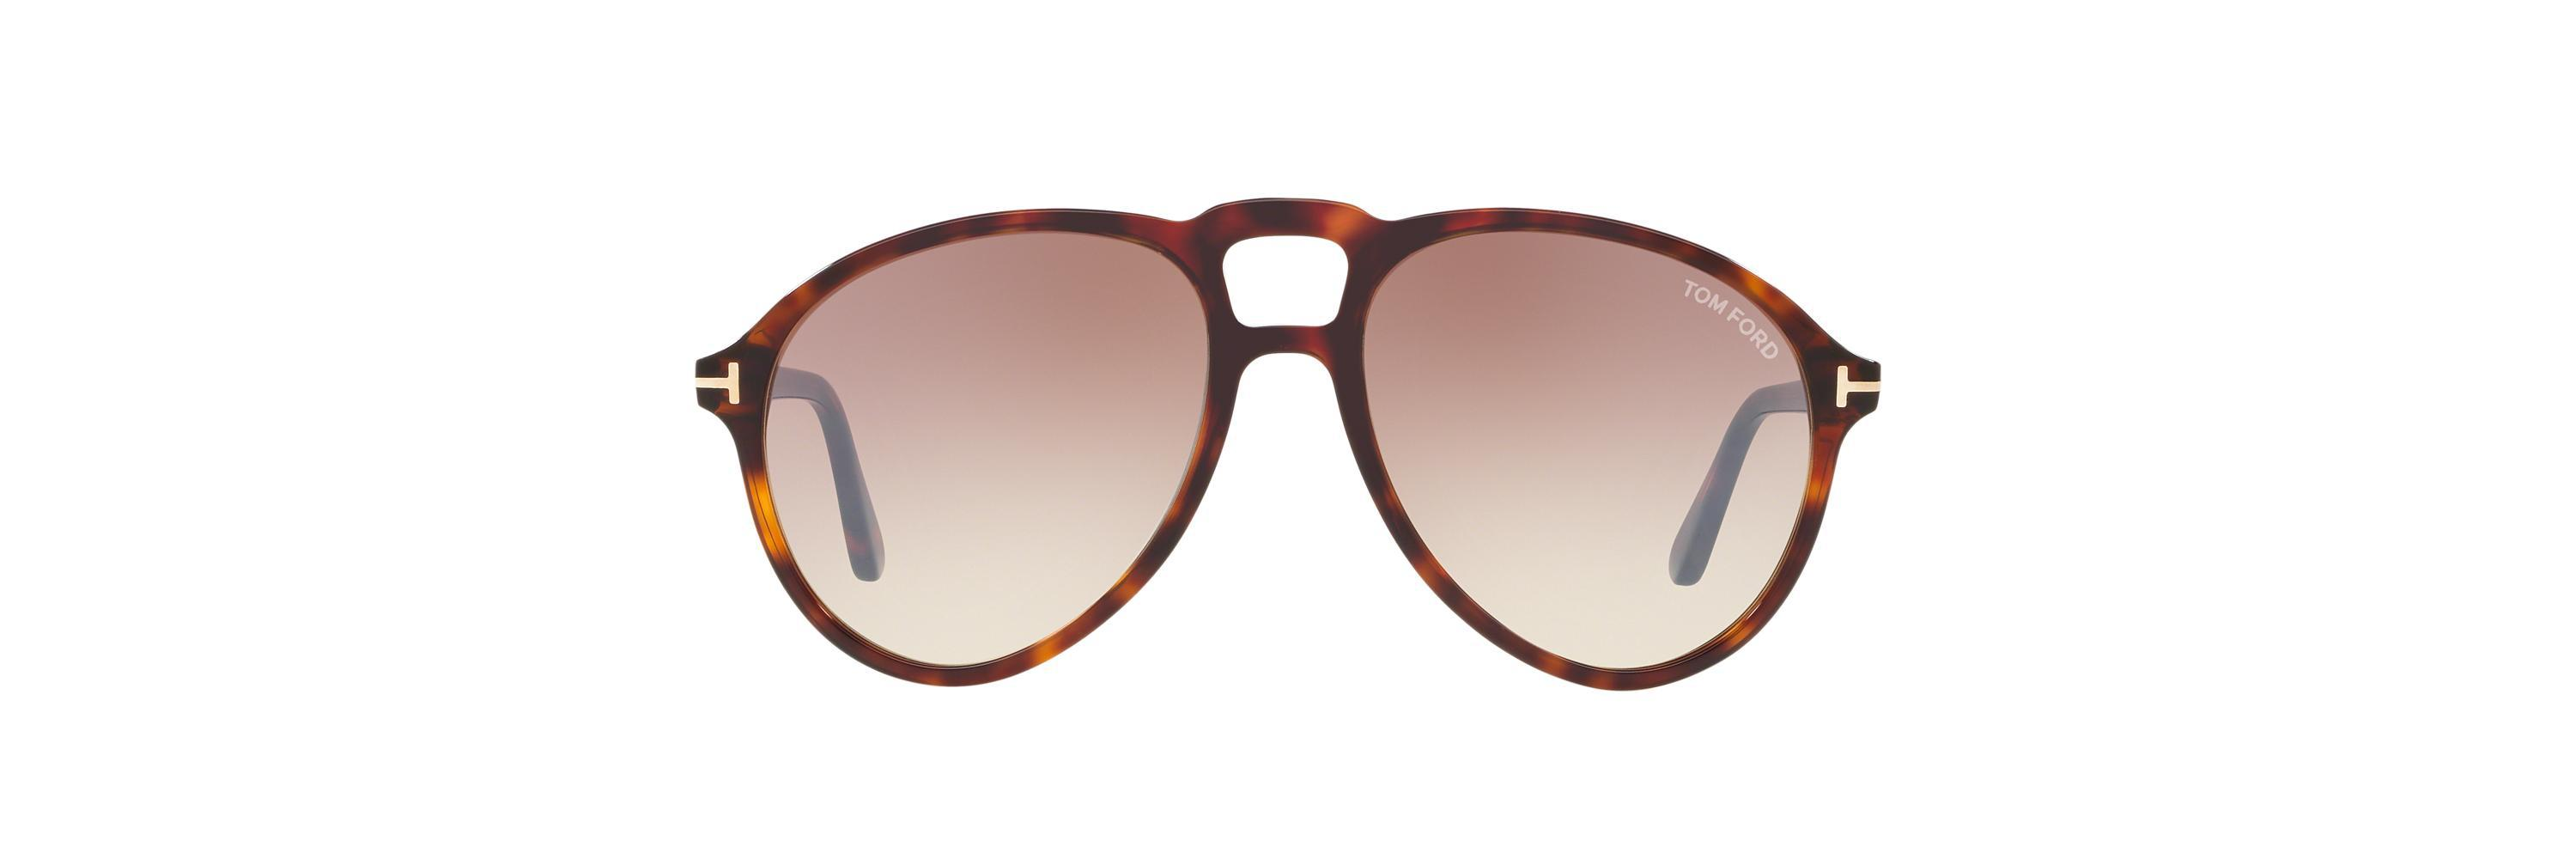 e2051039823 Tom Ford - Brown Sunglass Ft0645 57 for Men - Lyst. View fullscreen